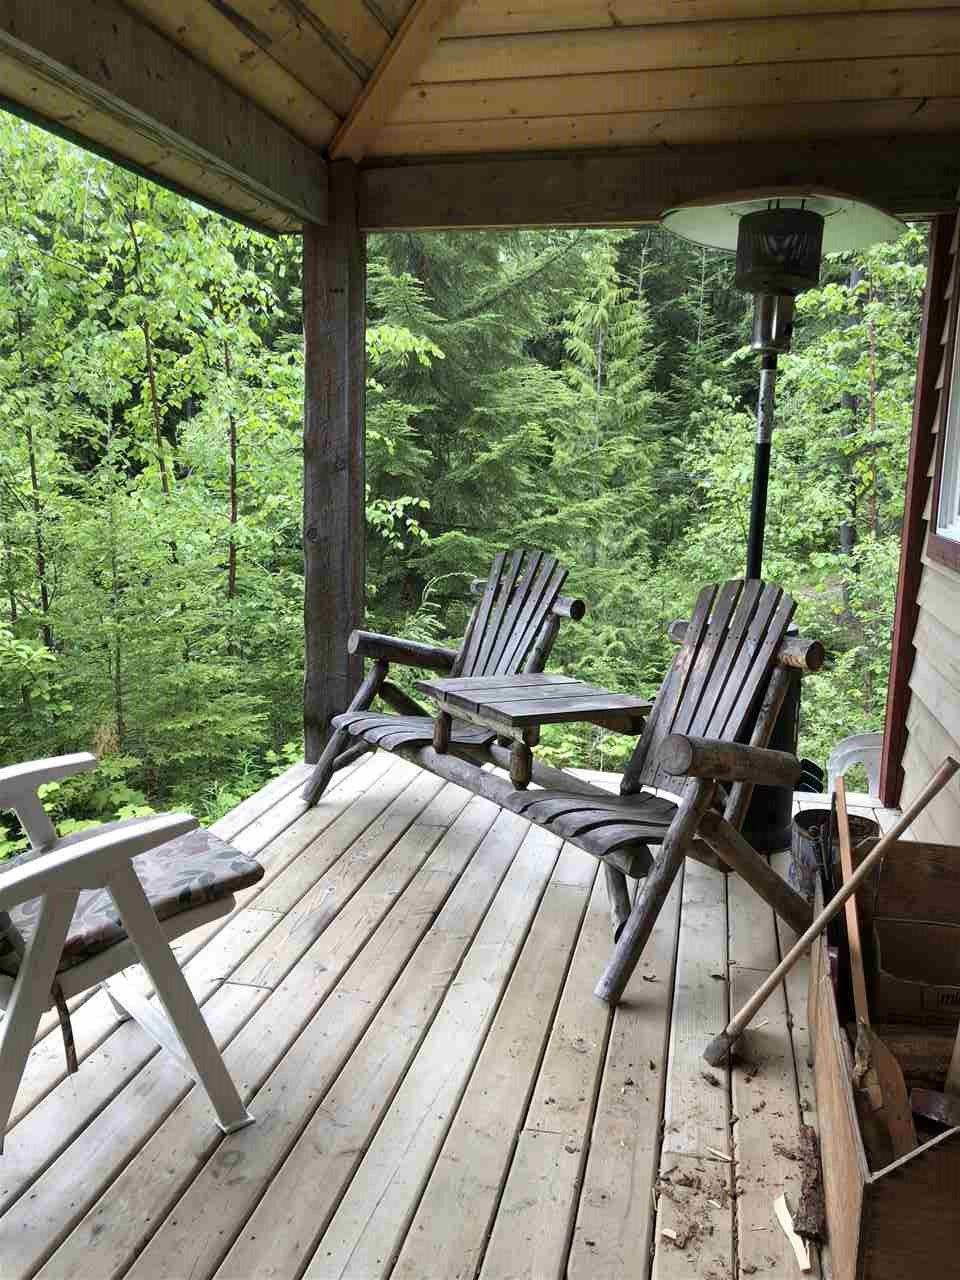 Photo 8: Photos: 5660 MARSHALL CREEK Road: Horsefly House for sale (Williams Lake (Zone 27))  : MLS®# R2277044